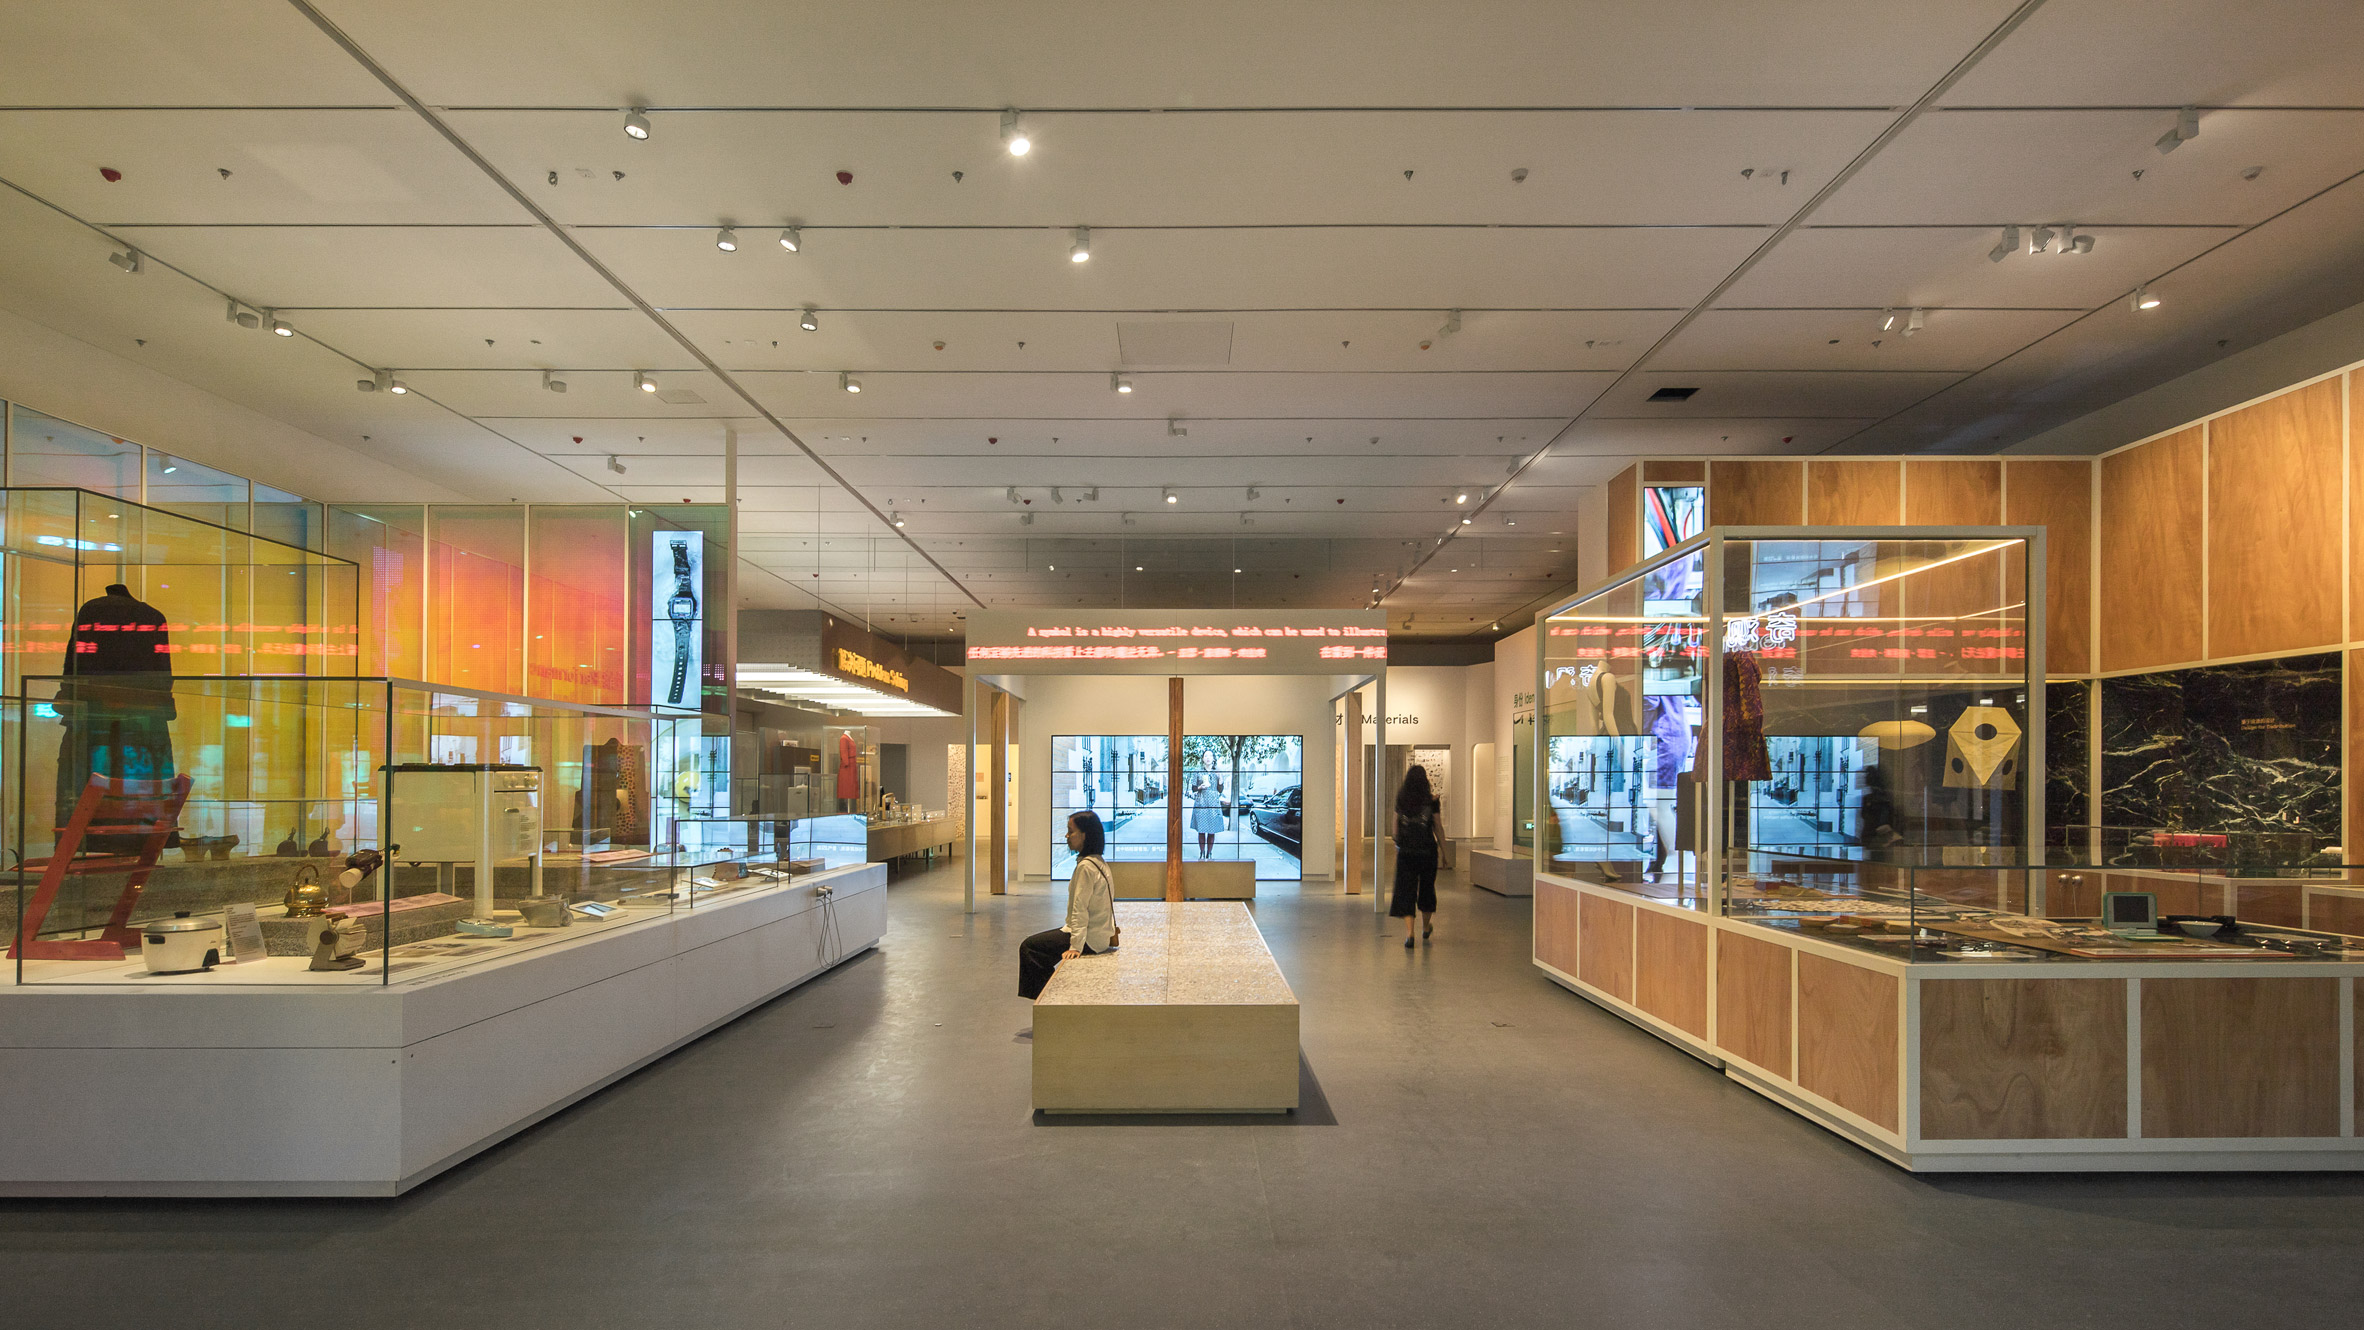 Design Society museum in Shenzhen surveys the industry's development with opening exhibitions